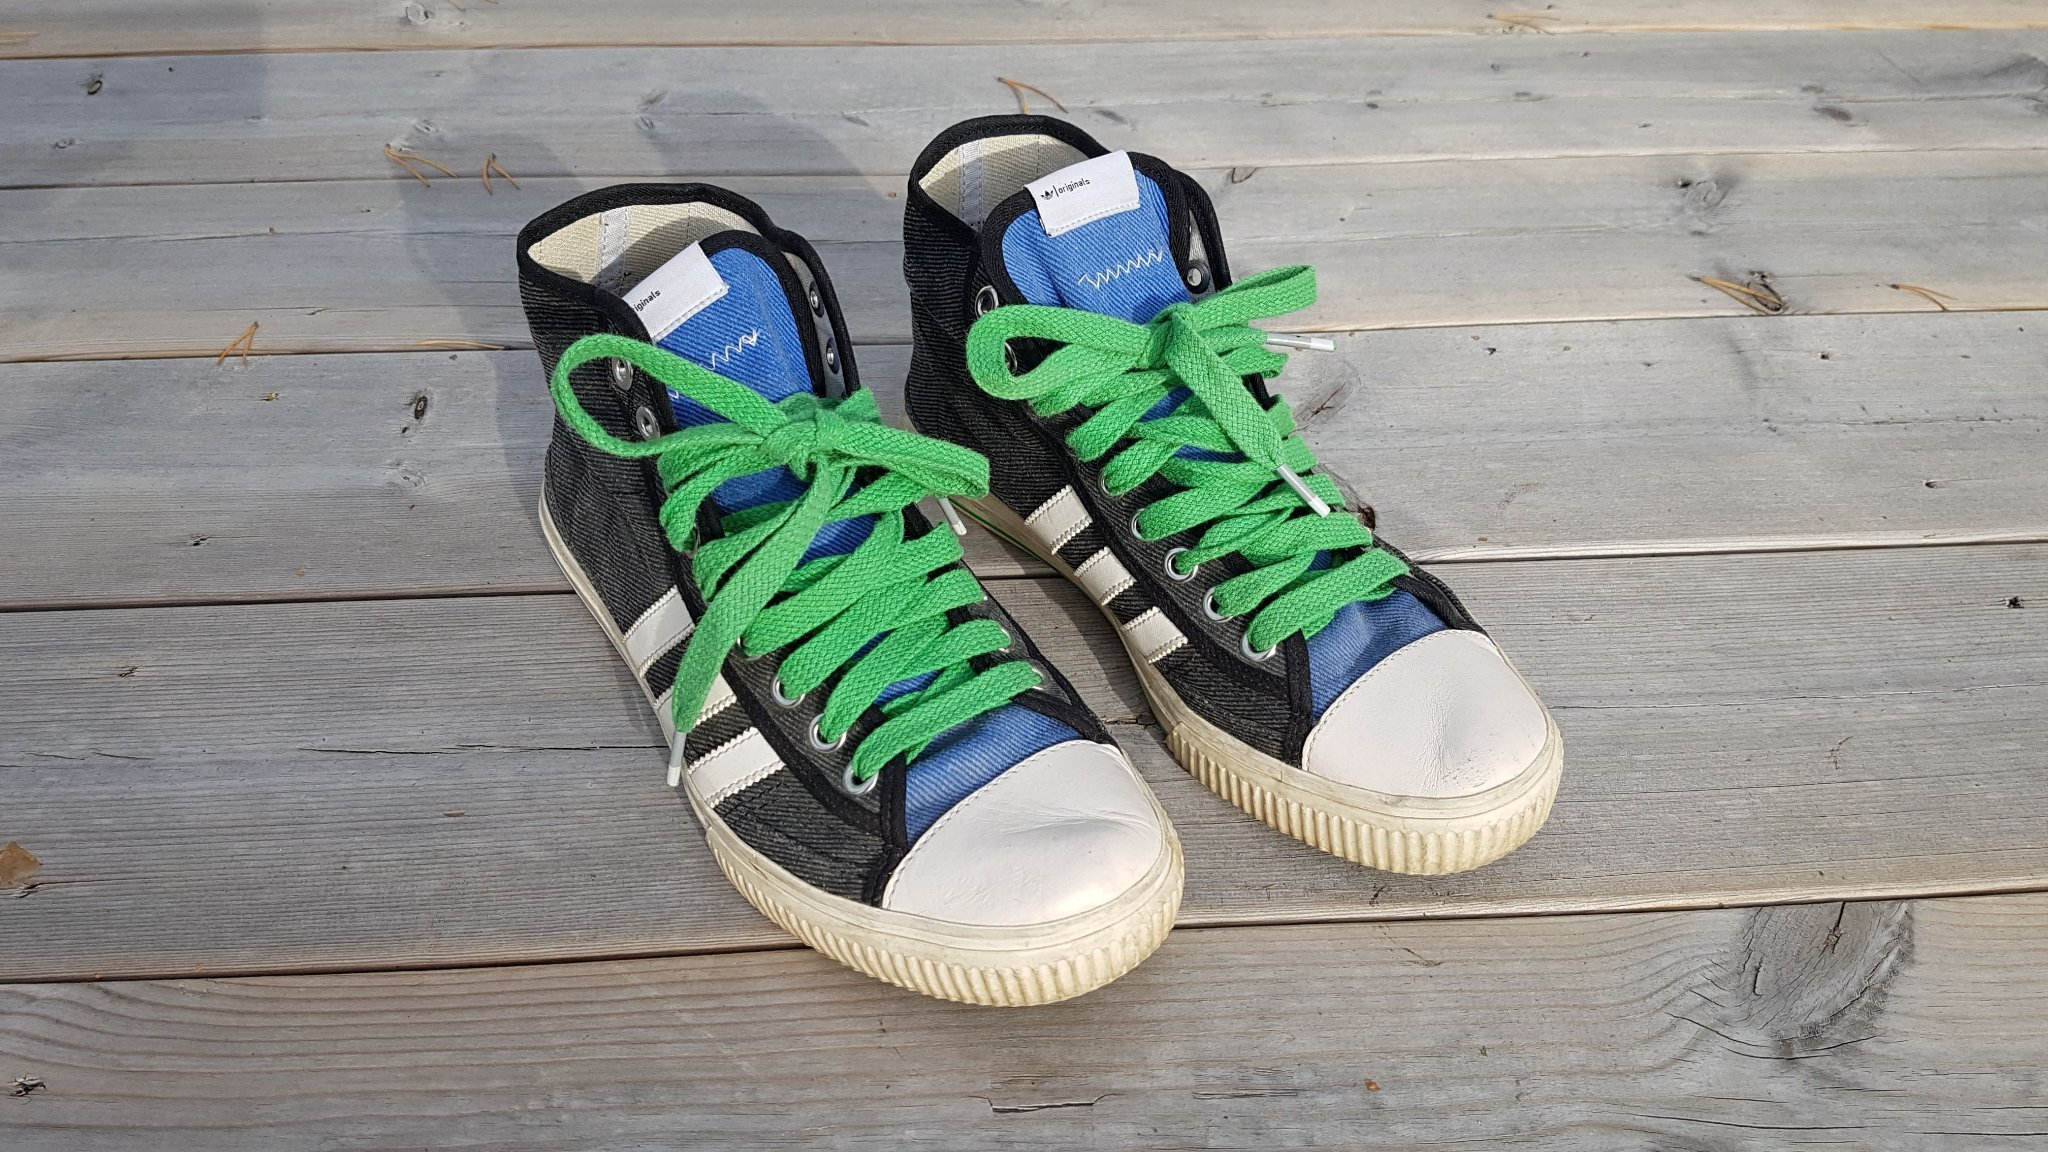 Adidas Originals limited edition sneakers high skor, storlek 41 42.